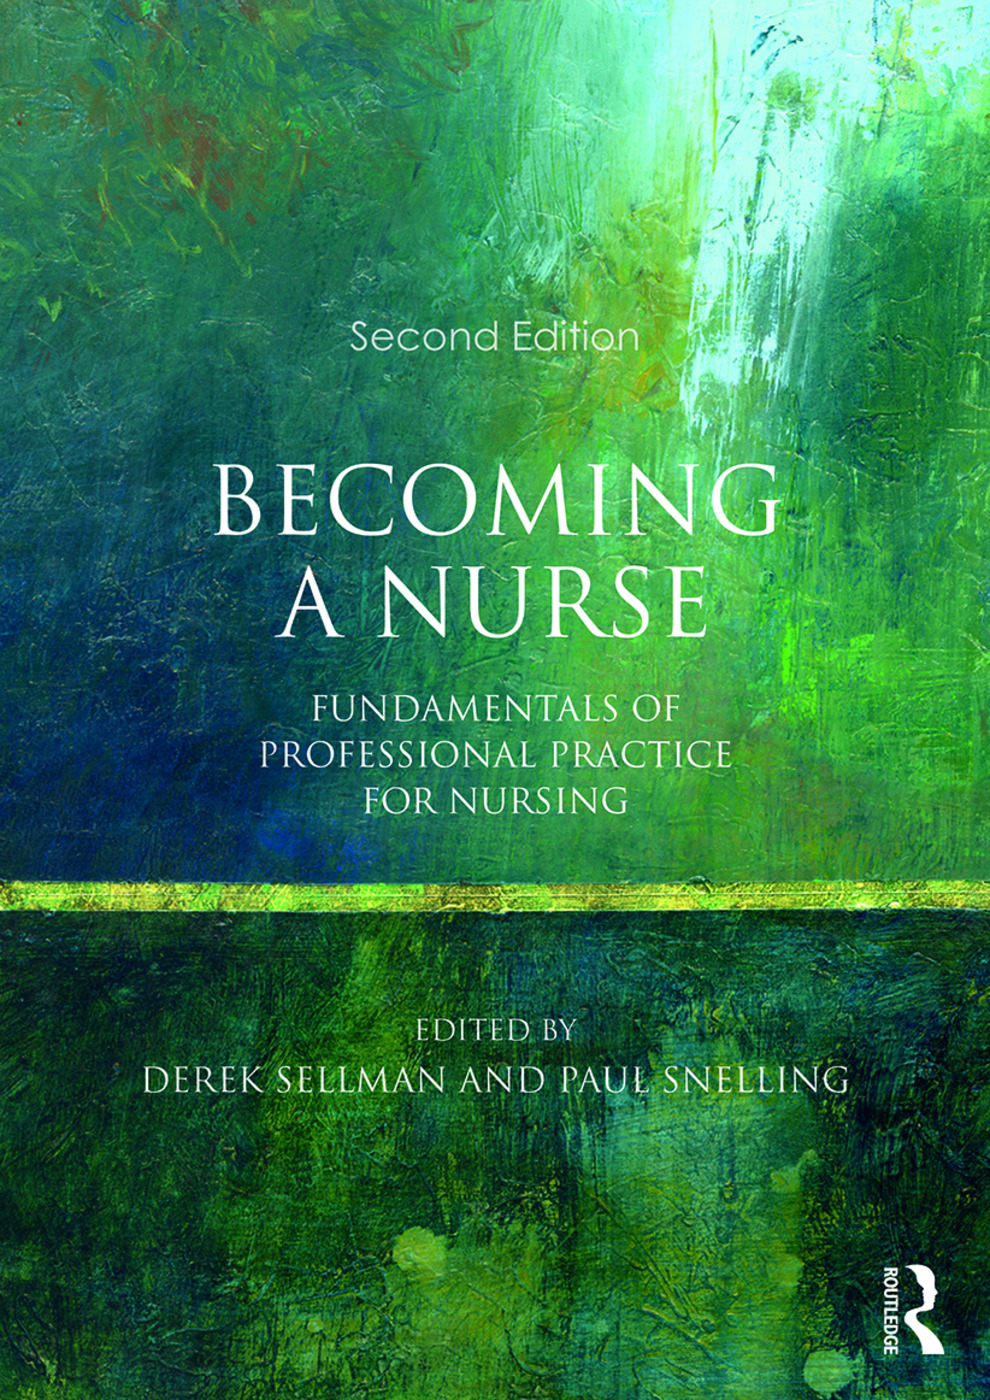 Becoming a Nurse: Fundamentals of Professional Practice for Nursing book cover